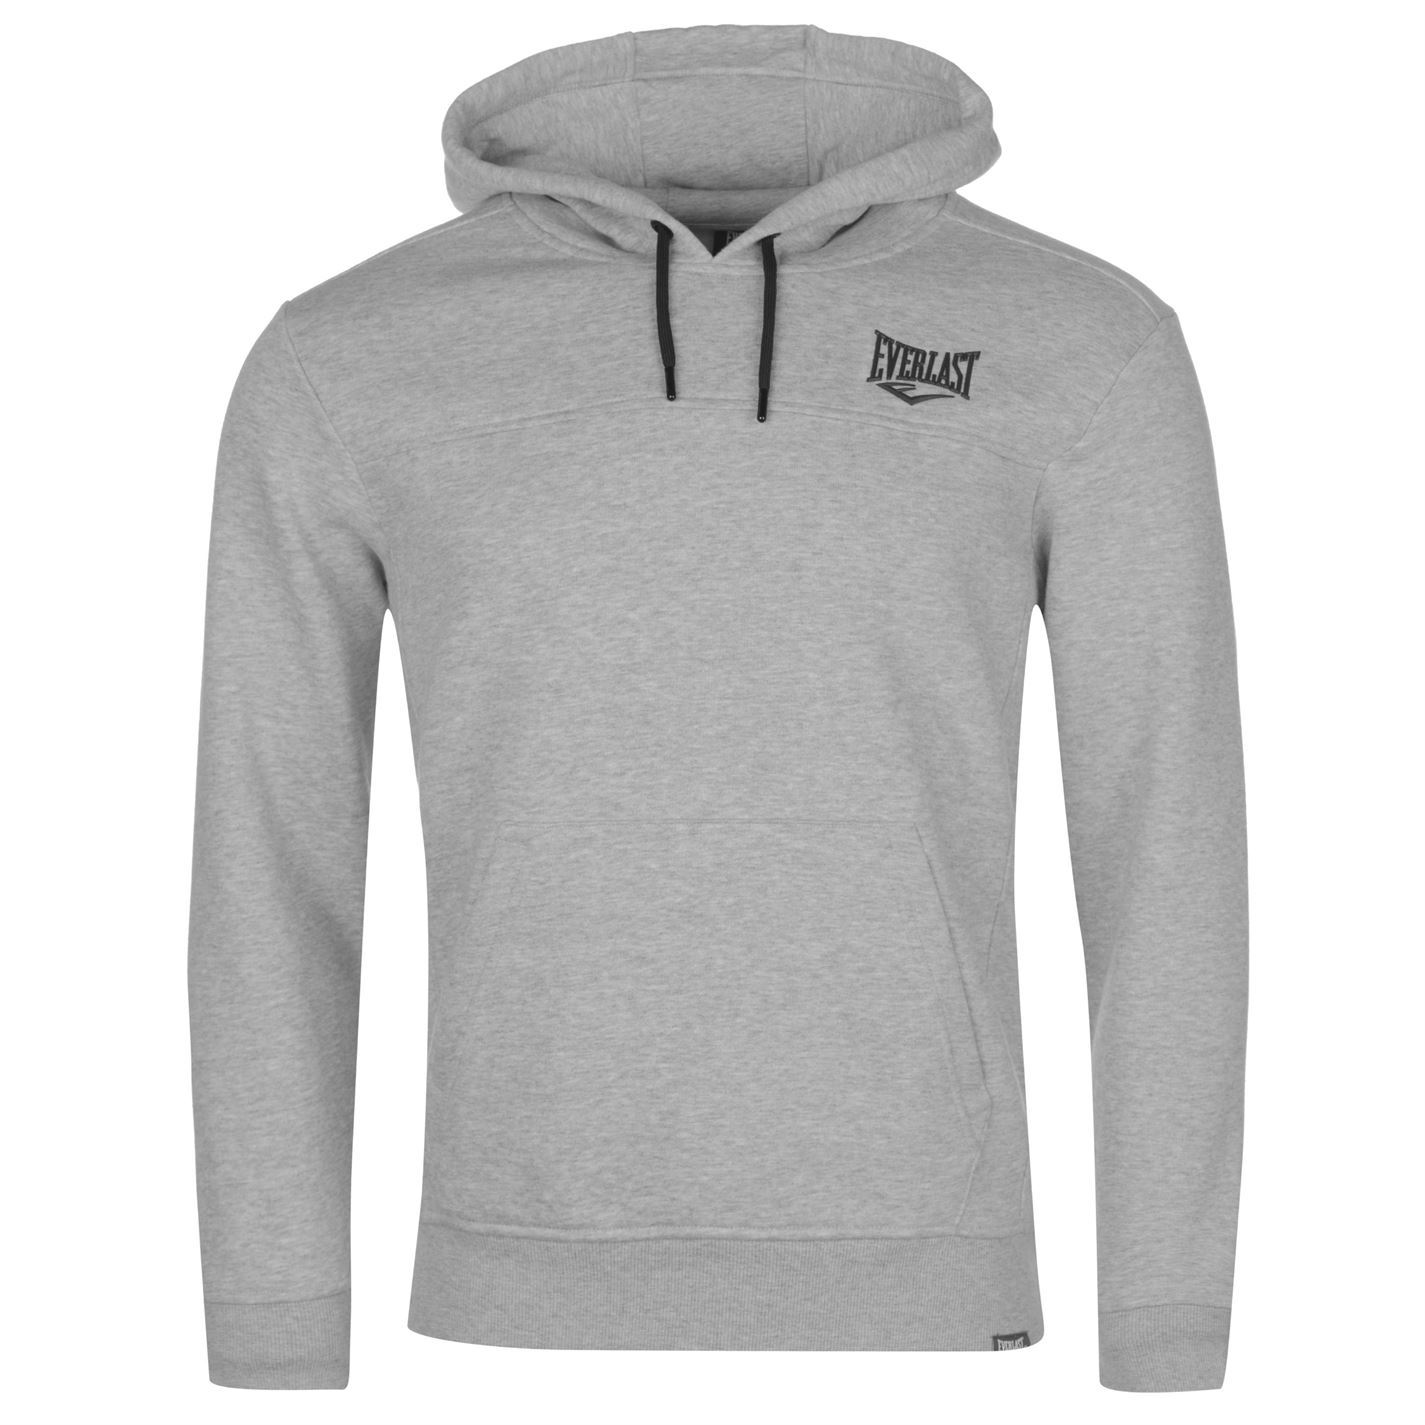 Everlast-Logo-Pullover-Hoody-Mens-OTH-Hoodie-Hooded-Top-Sweatshirt-Sweater thumbnail 18